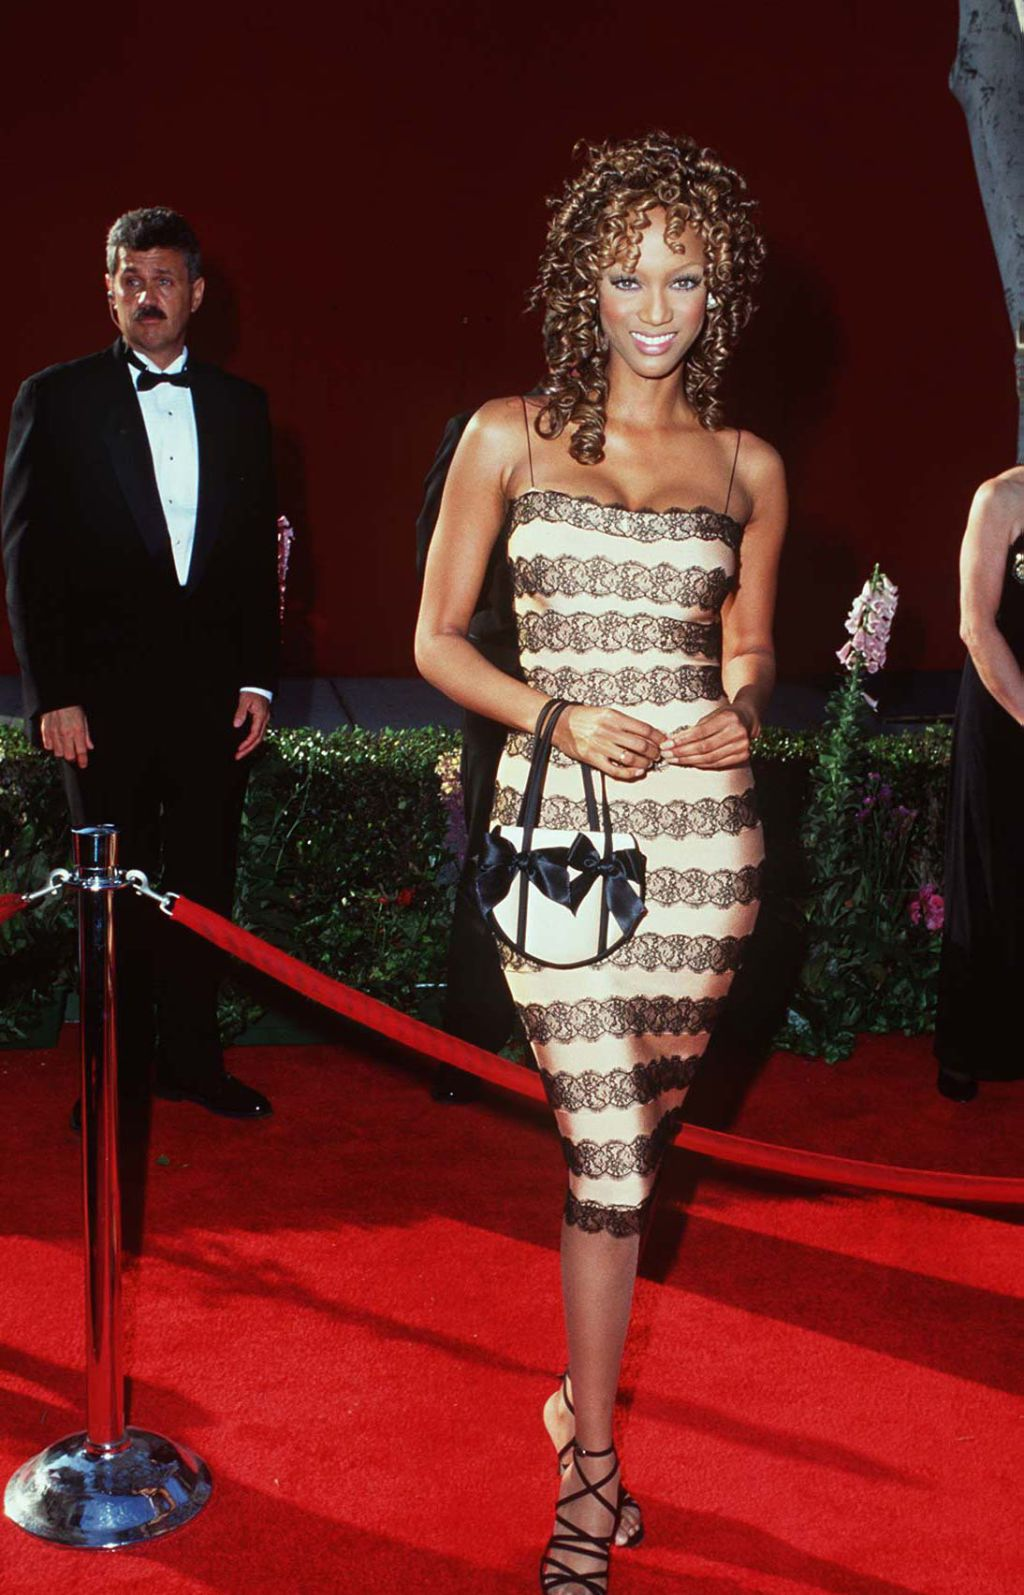 The 35 Worst Fashion Fails in Oscars History recommendations